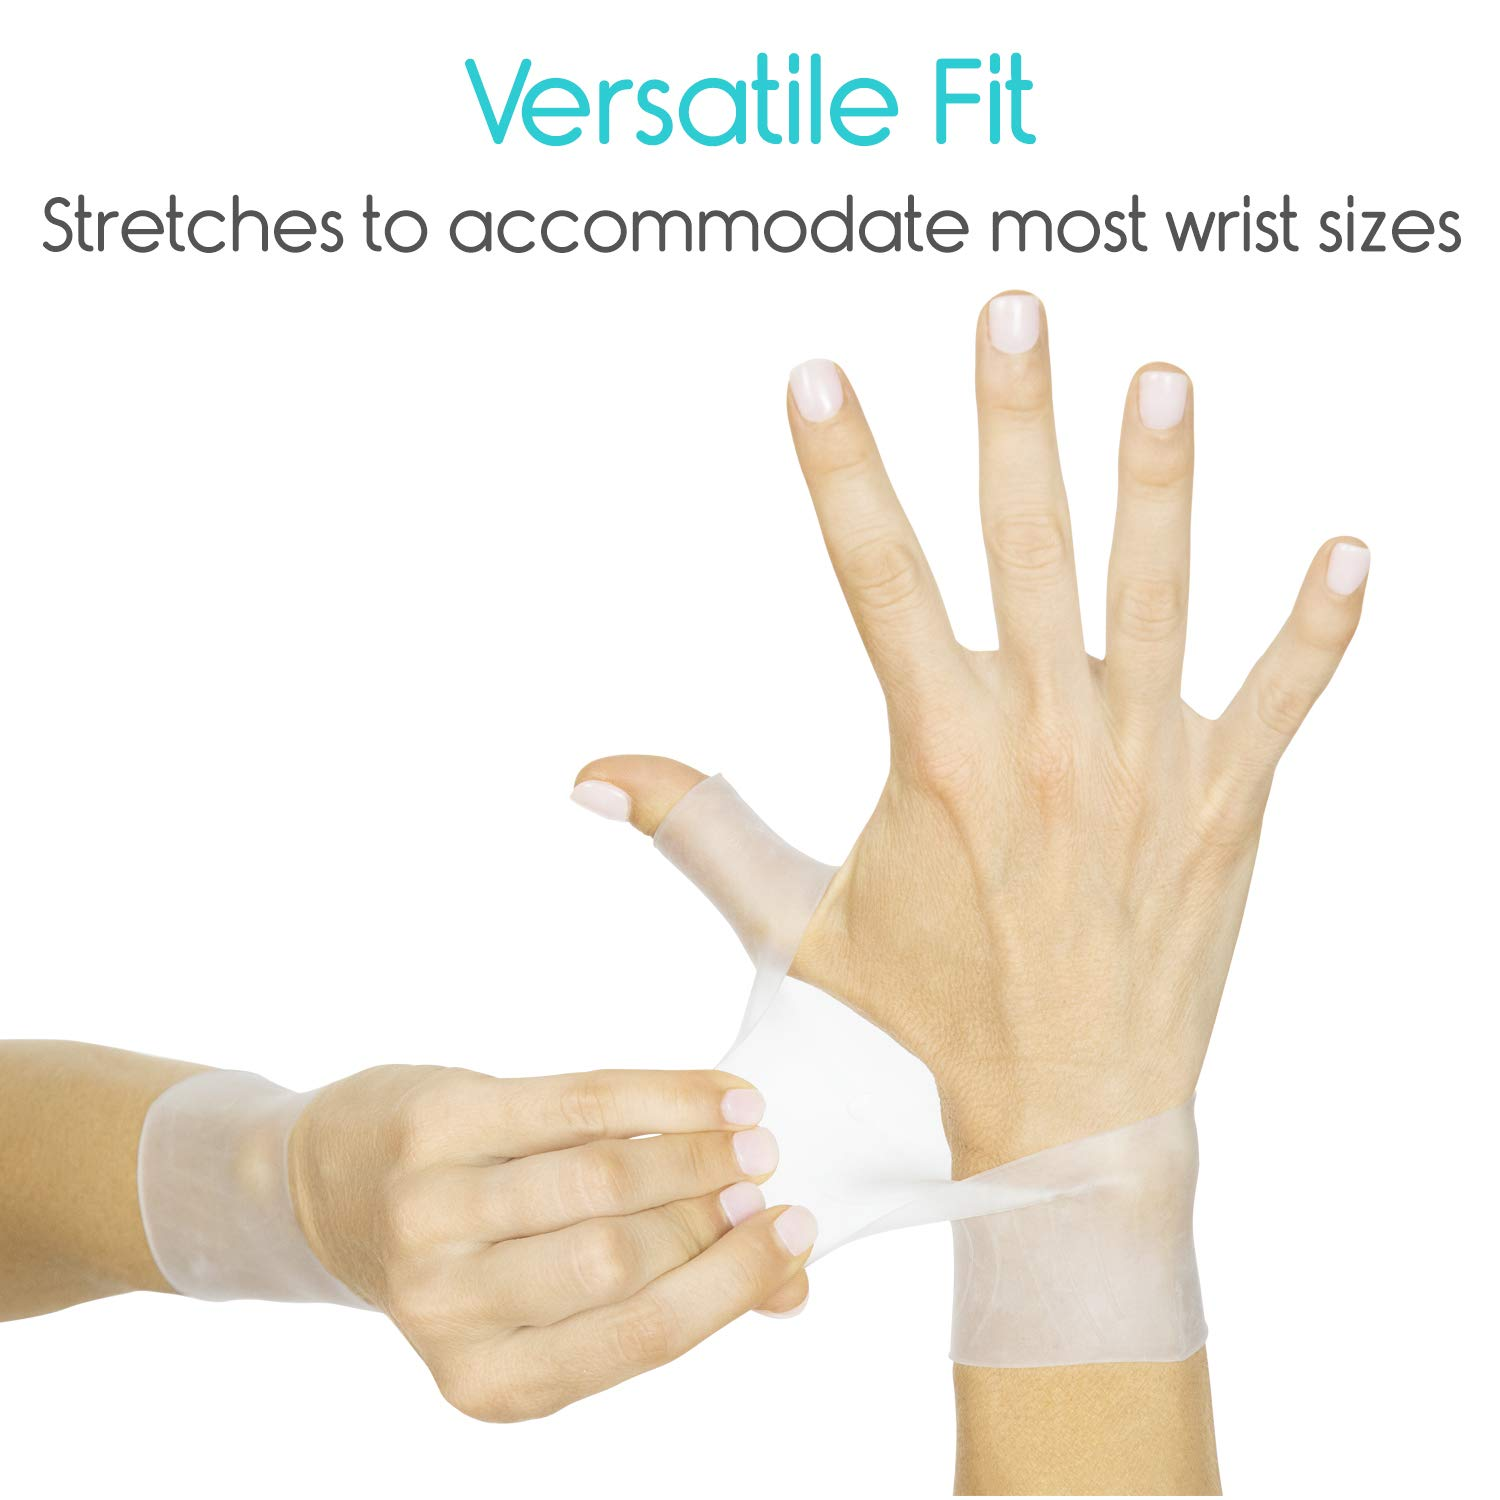 Vive Gel Thumb Support - Spica Wrist Brace Cool Wrap for Arthritis Dequervains Tenosynovitis Left and Right Hand Stabilizer Sprained Joint Pain Pair Soft Comfort Splint for Tendonitis Strain